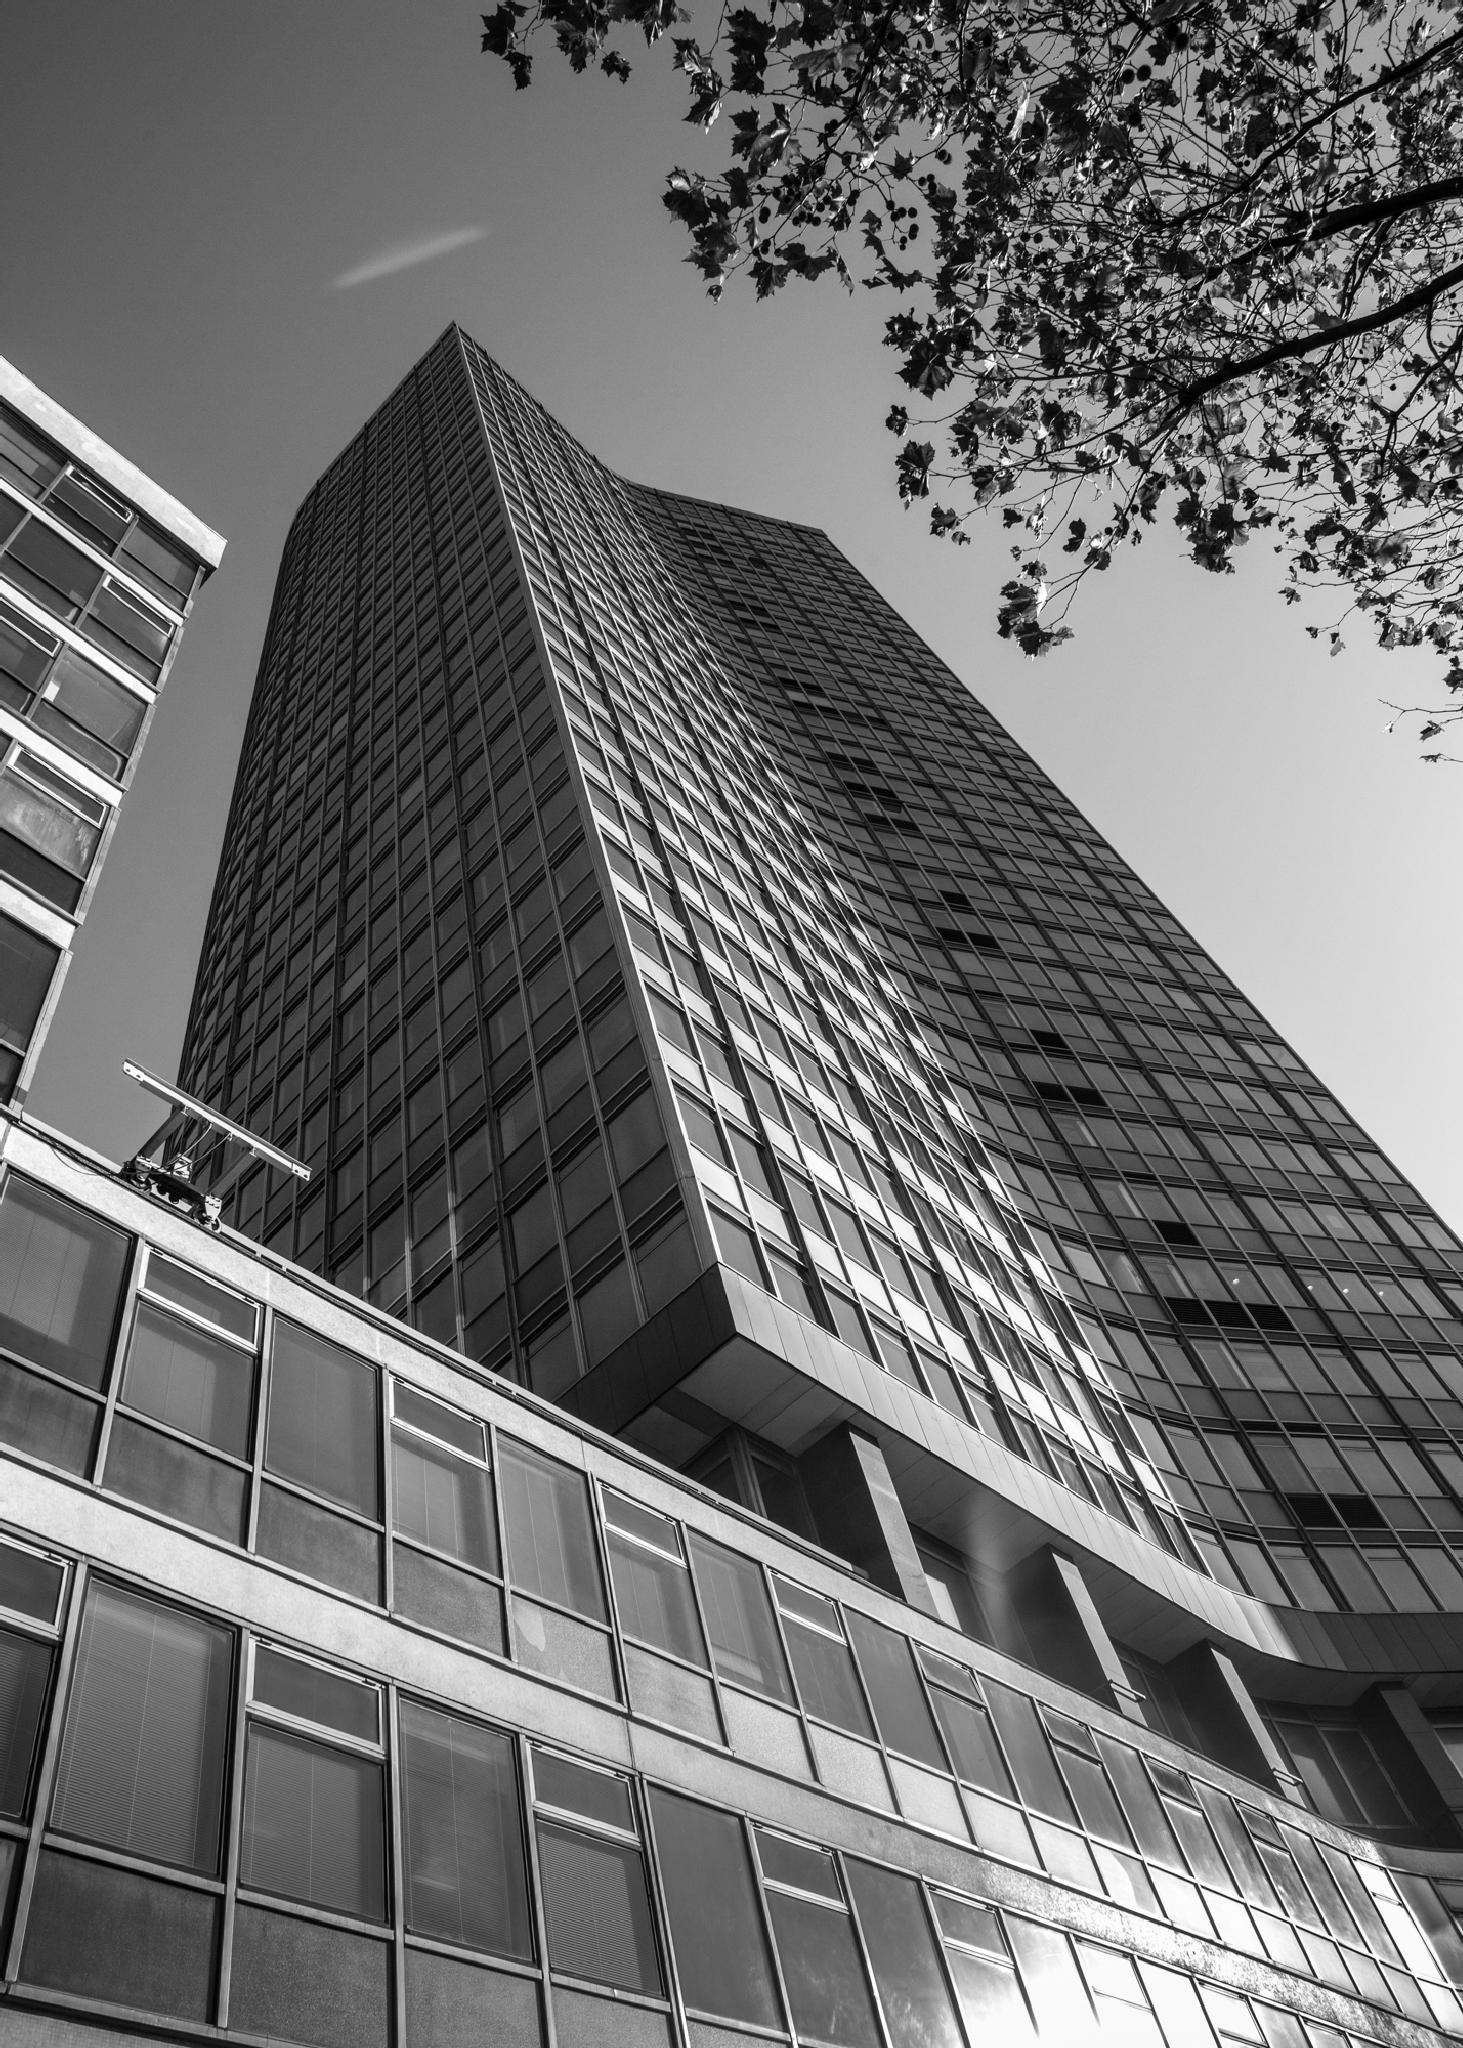 Millbank Tower by photorob